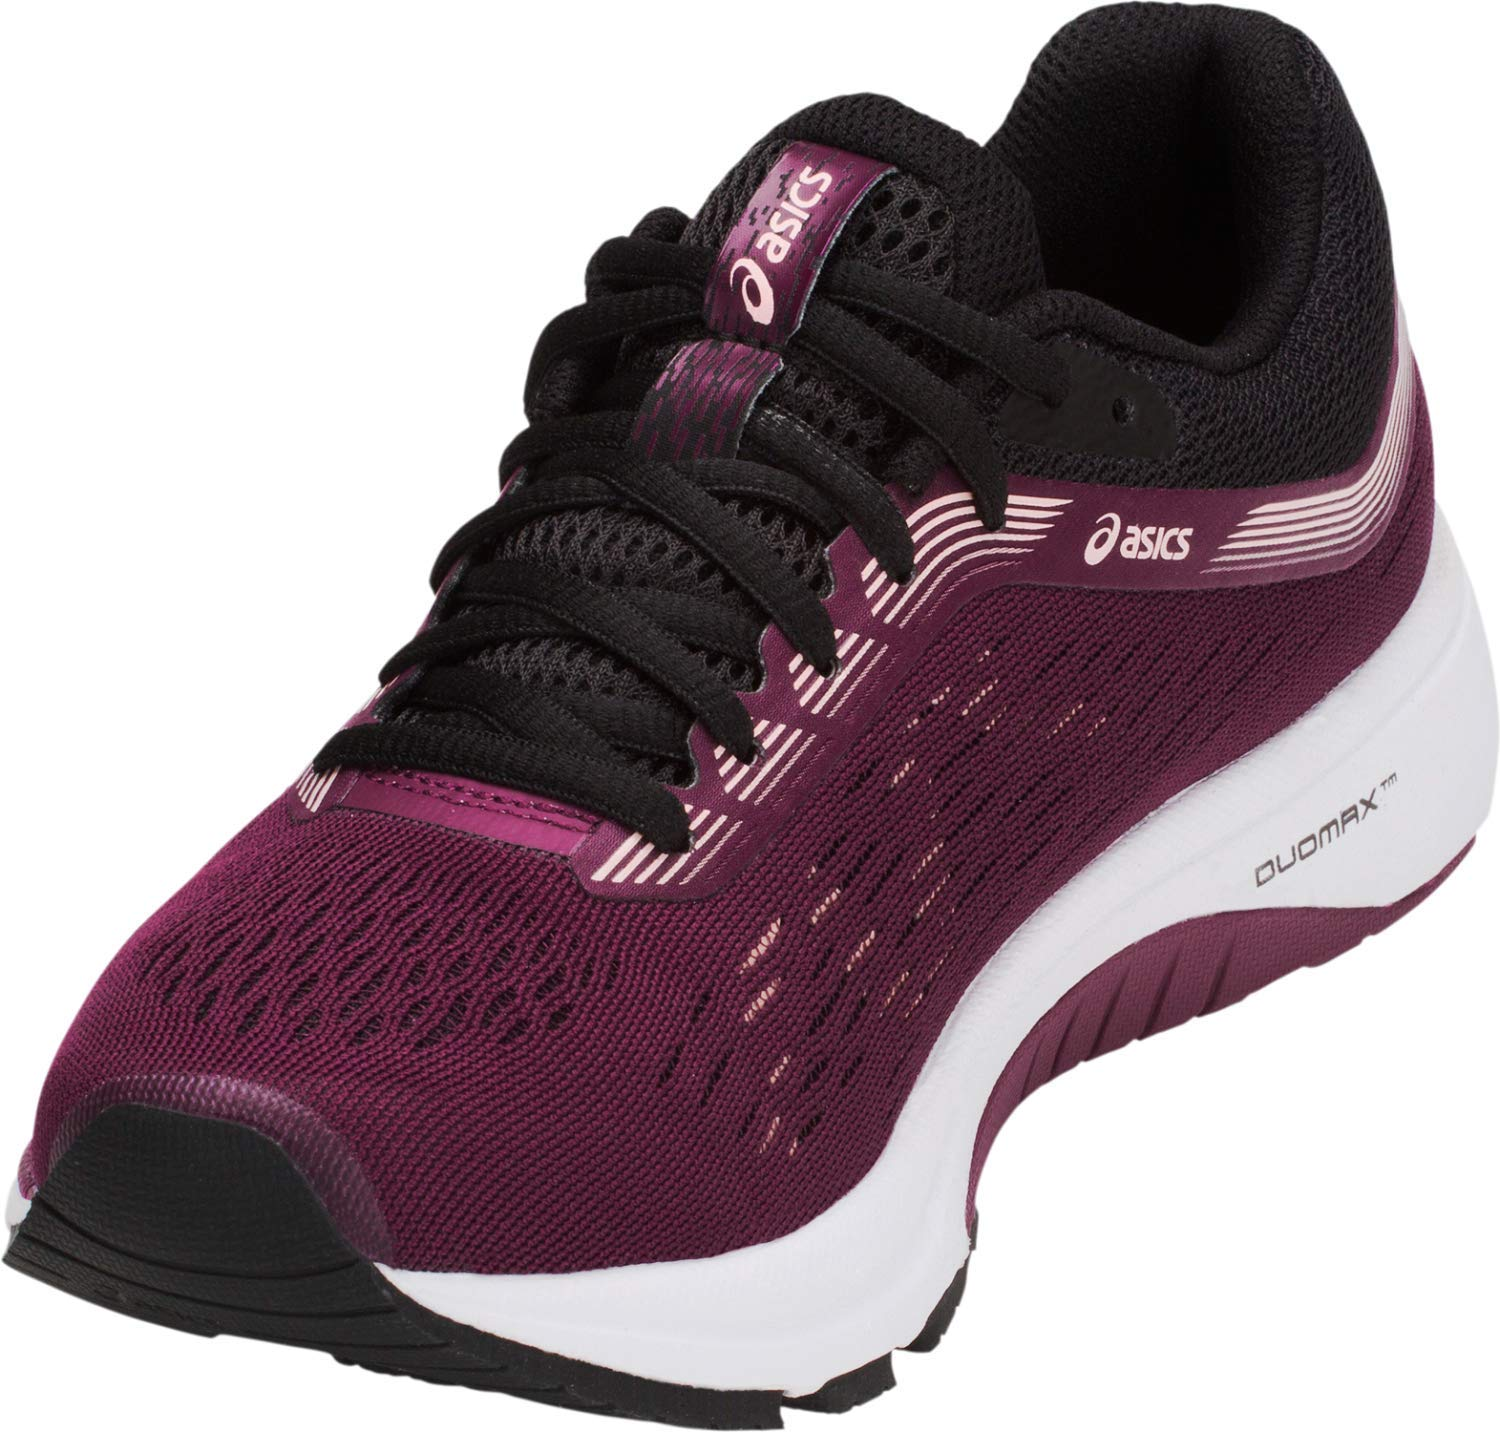 ASICS GT-1000 7 Women's Running Shoe, Roselle/Black, 5.5 B US by ASICS (Image #3)